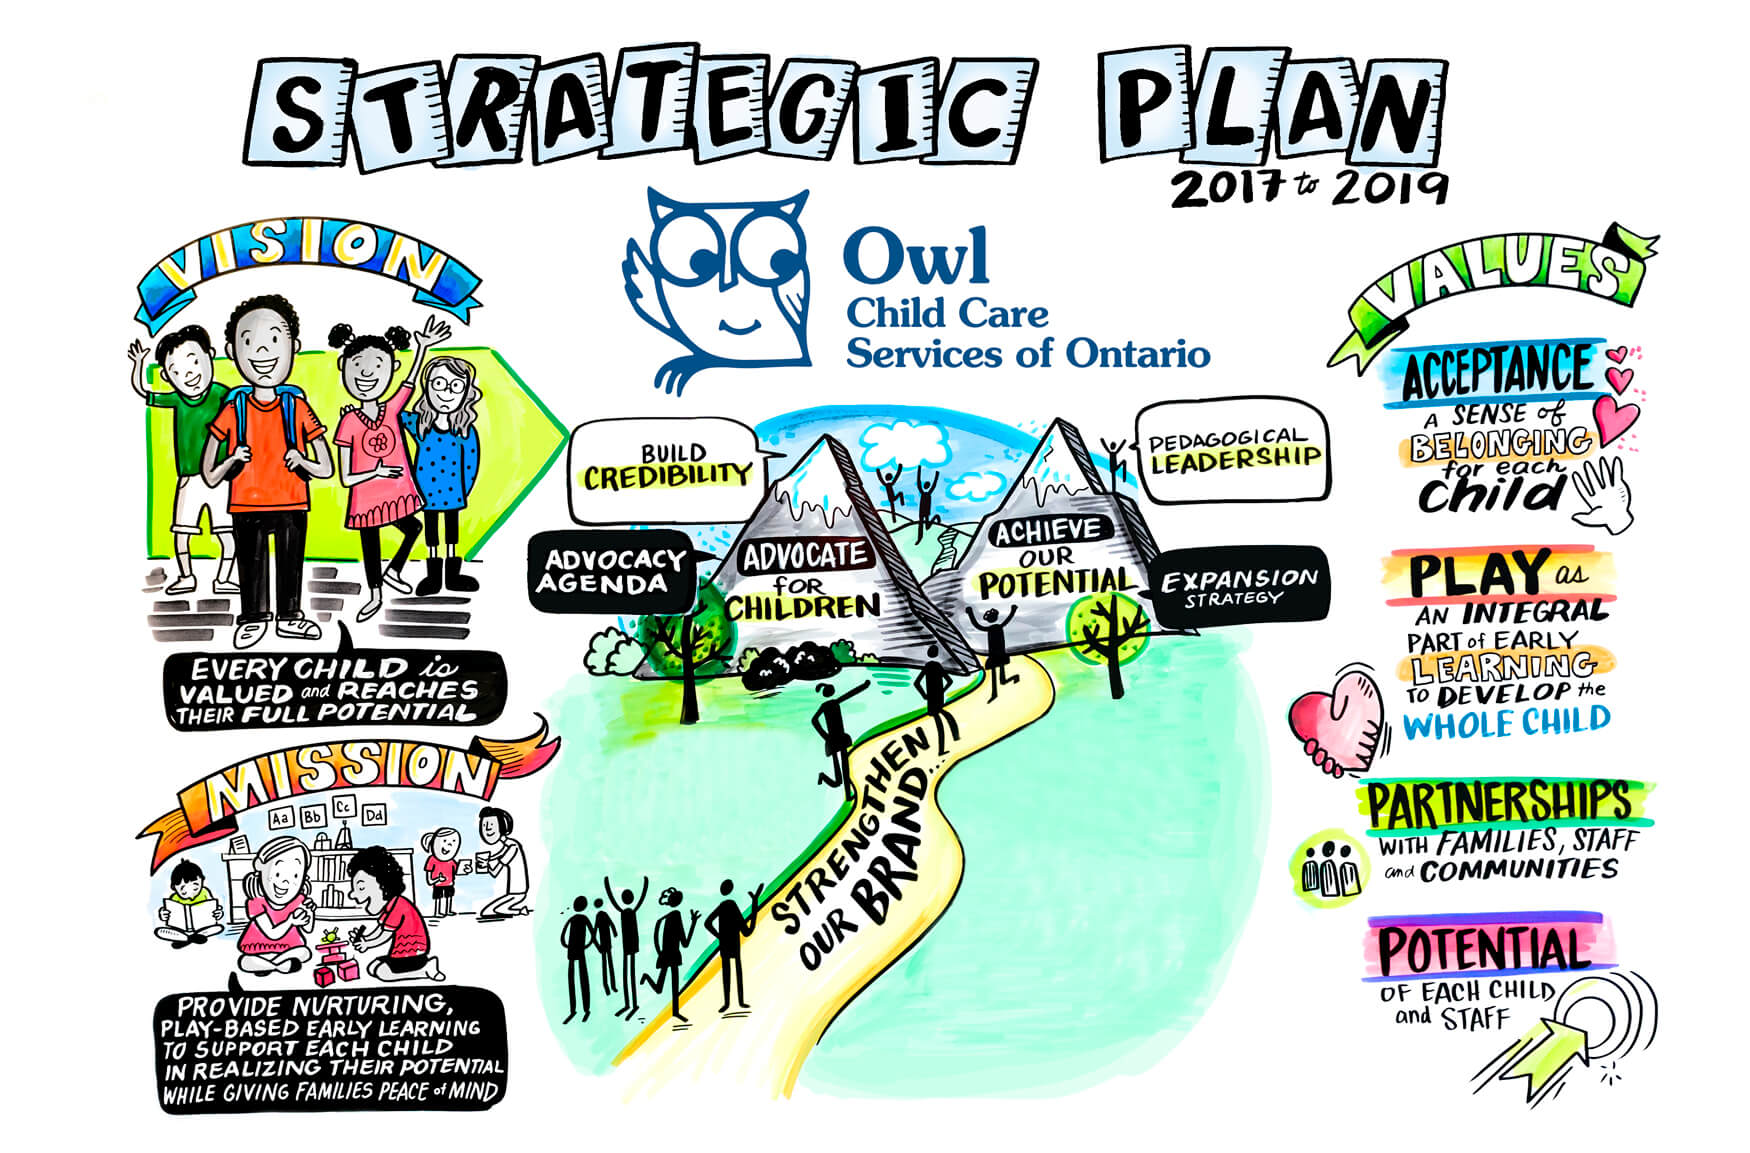 Strategic Plan - Advocate for Children, Achieve our Potential, strengthen our brand